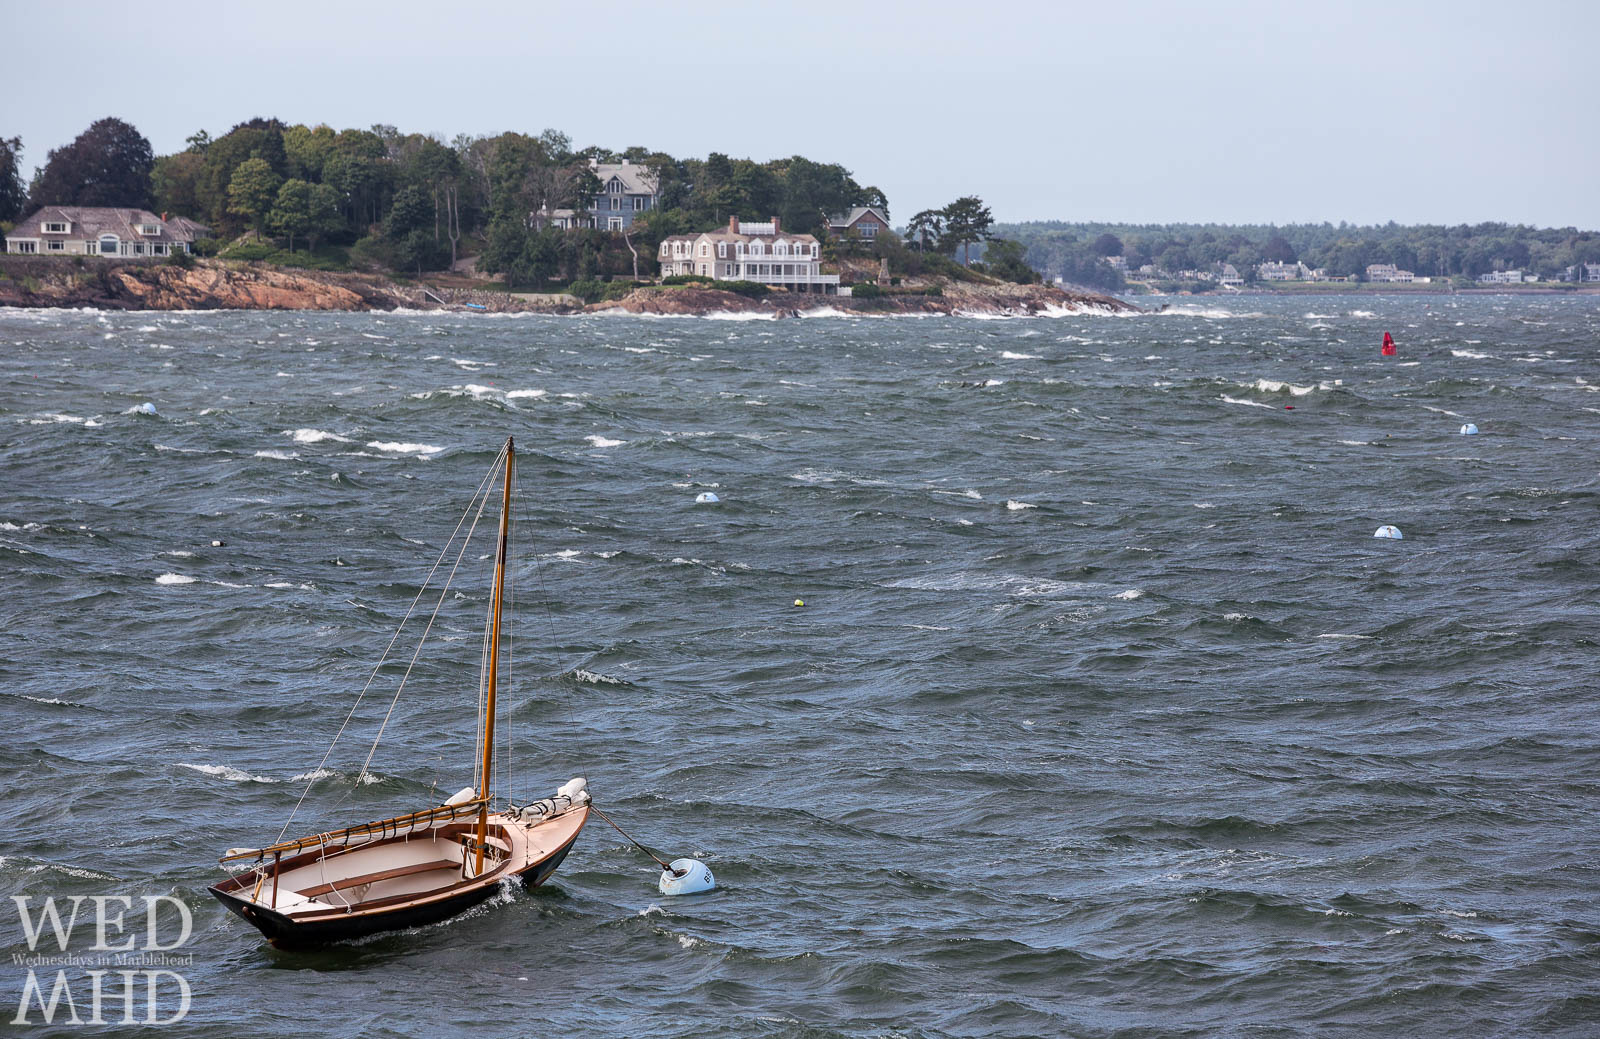 A lone boat caught fighting the current created by an offshore storm while moored at the mouth of Marblehead Harbor